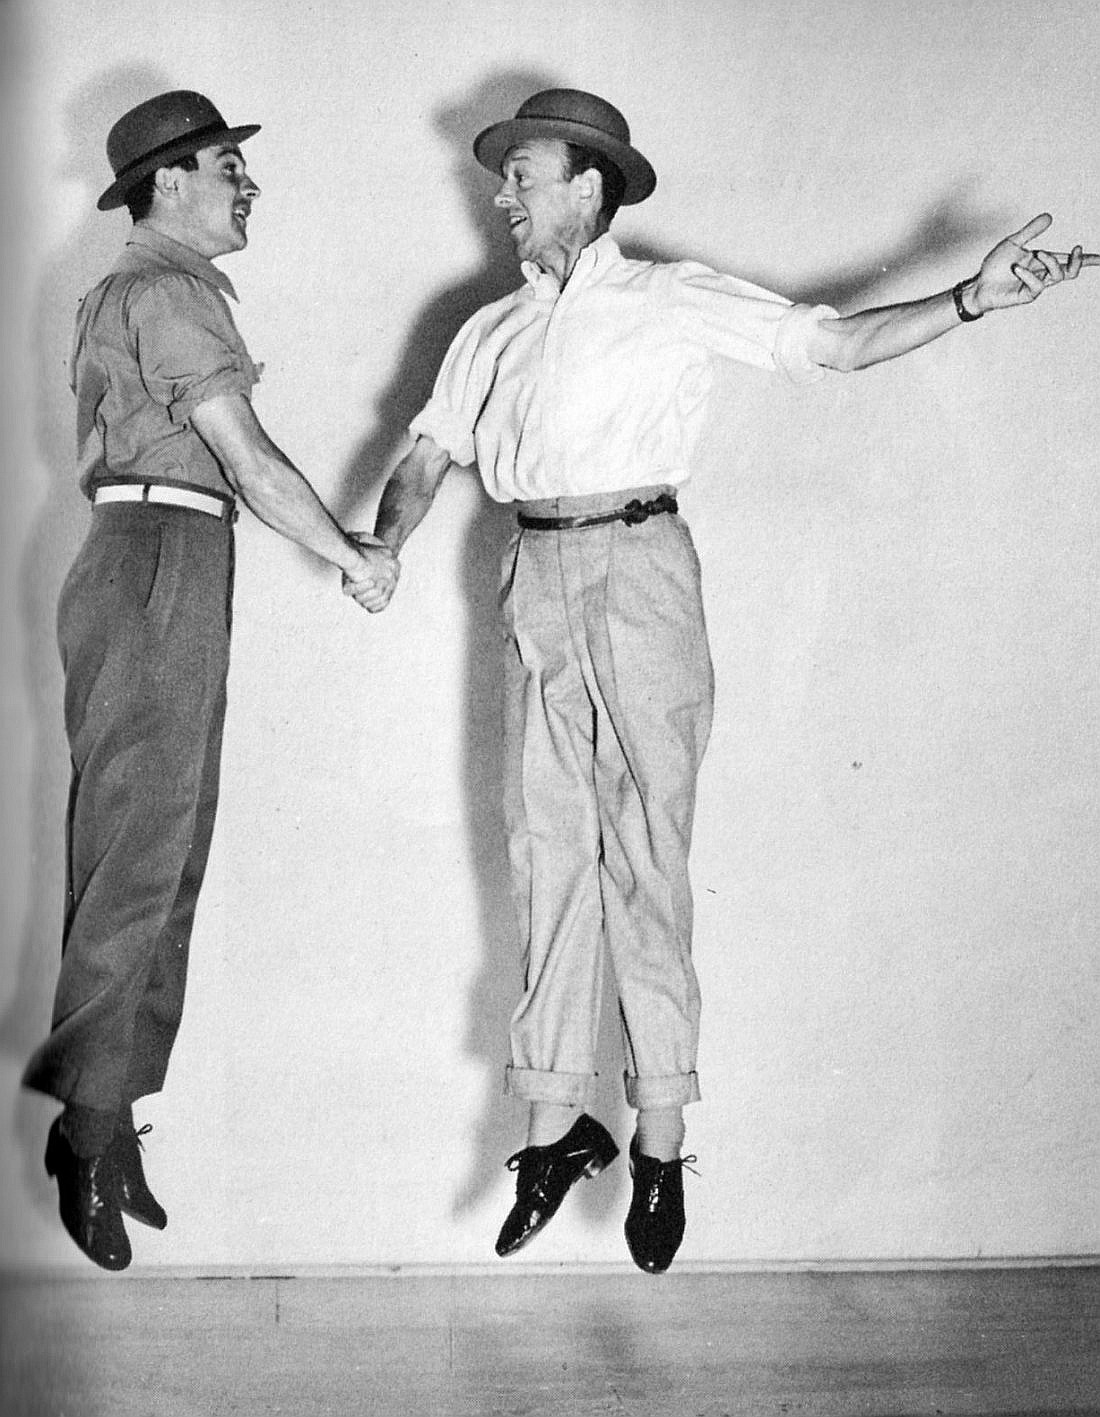 awesomepeoplehangingouttogether:  Gene Kelly and Fred Astaire   This picture is amazing!